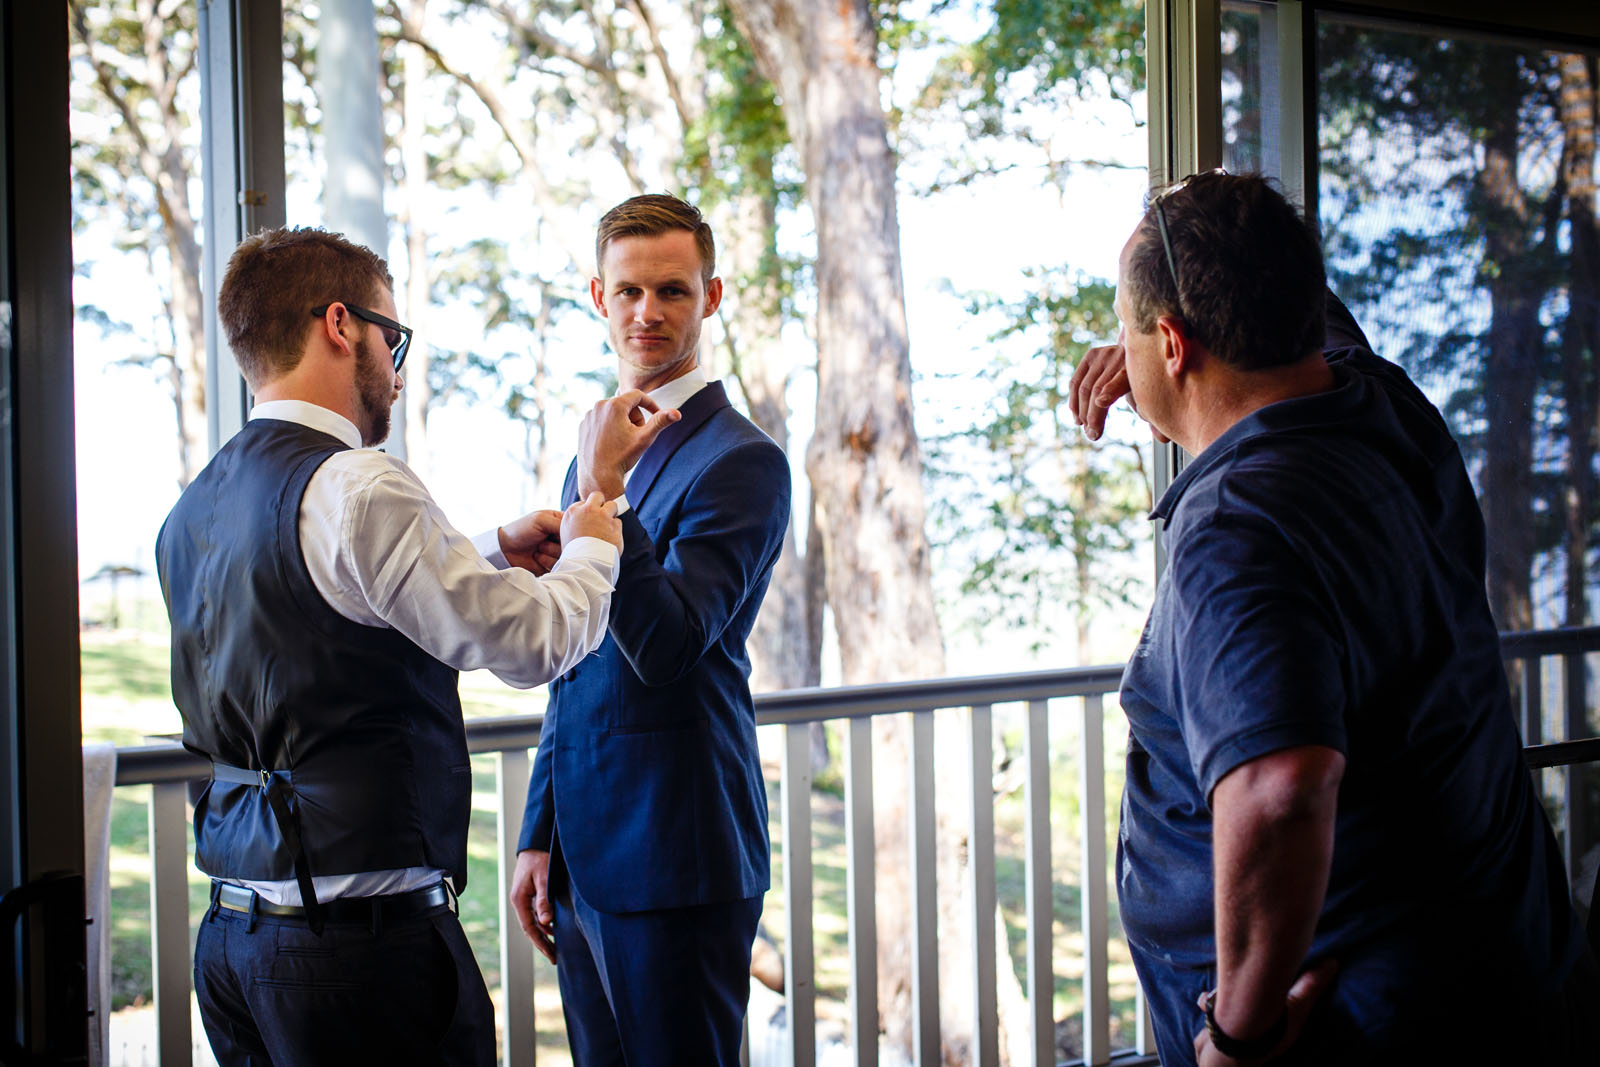 mount_tamborine_wedding_photographer_180